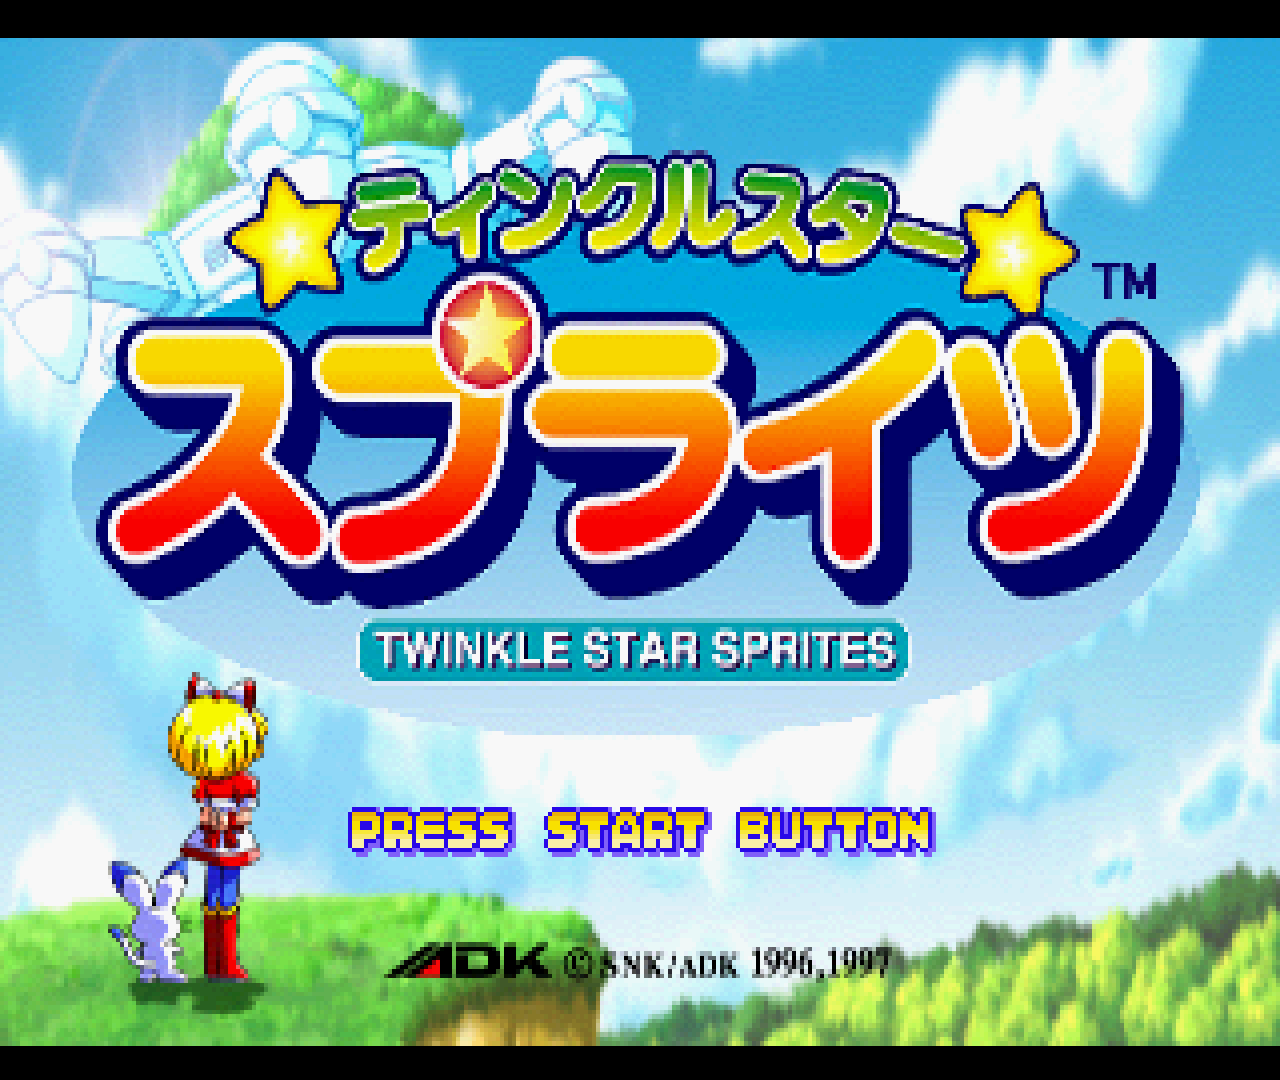 Figure 17 - Twinkle Star Sprites on the Sega Saturn